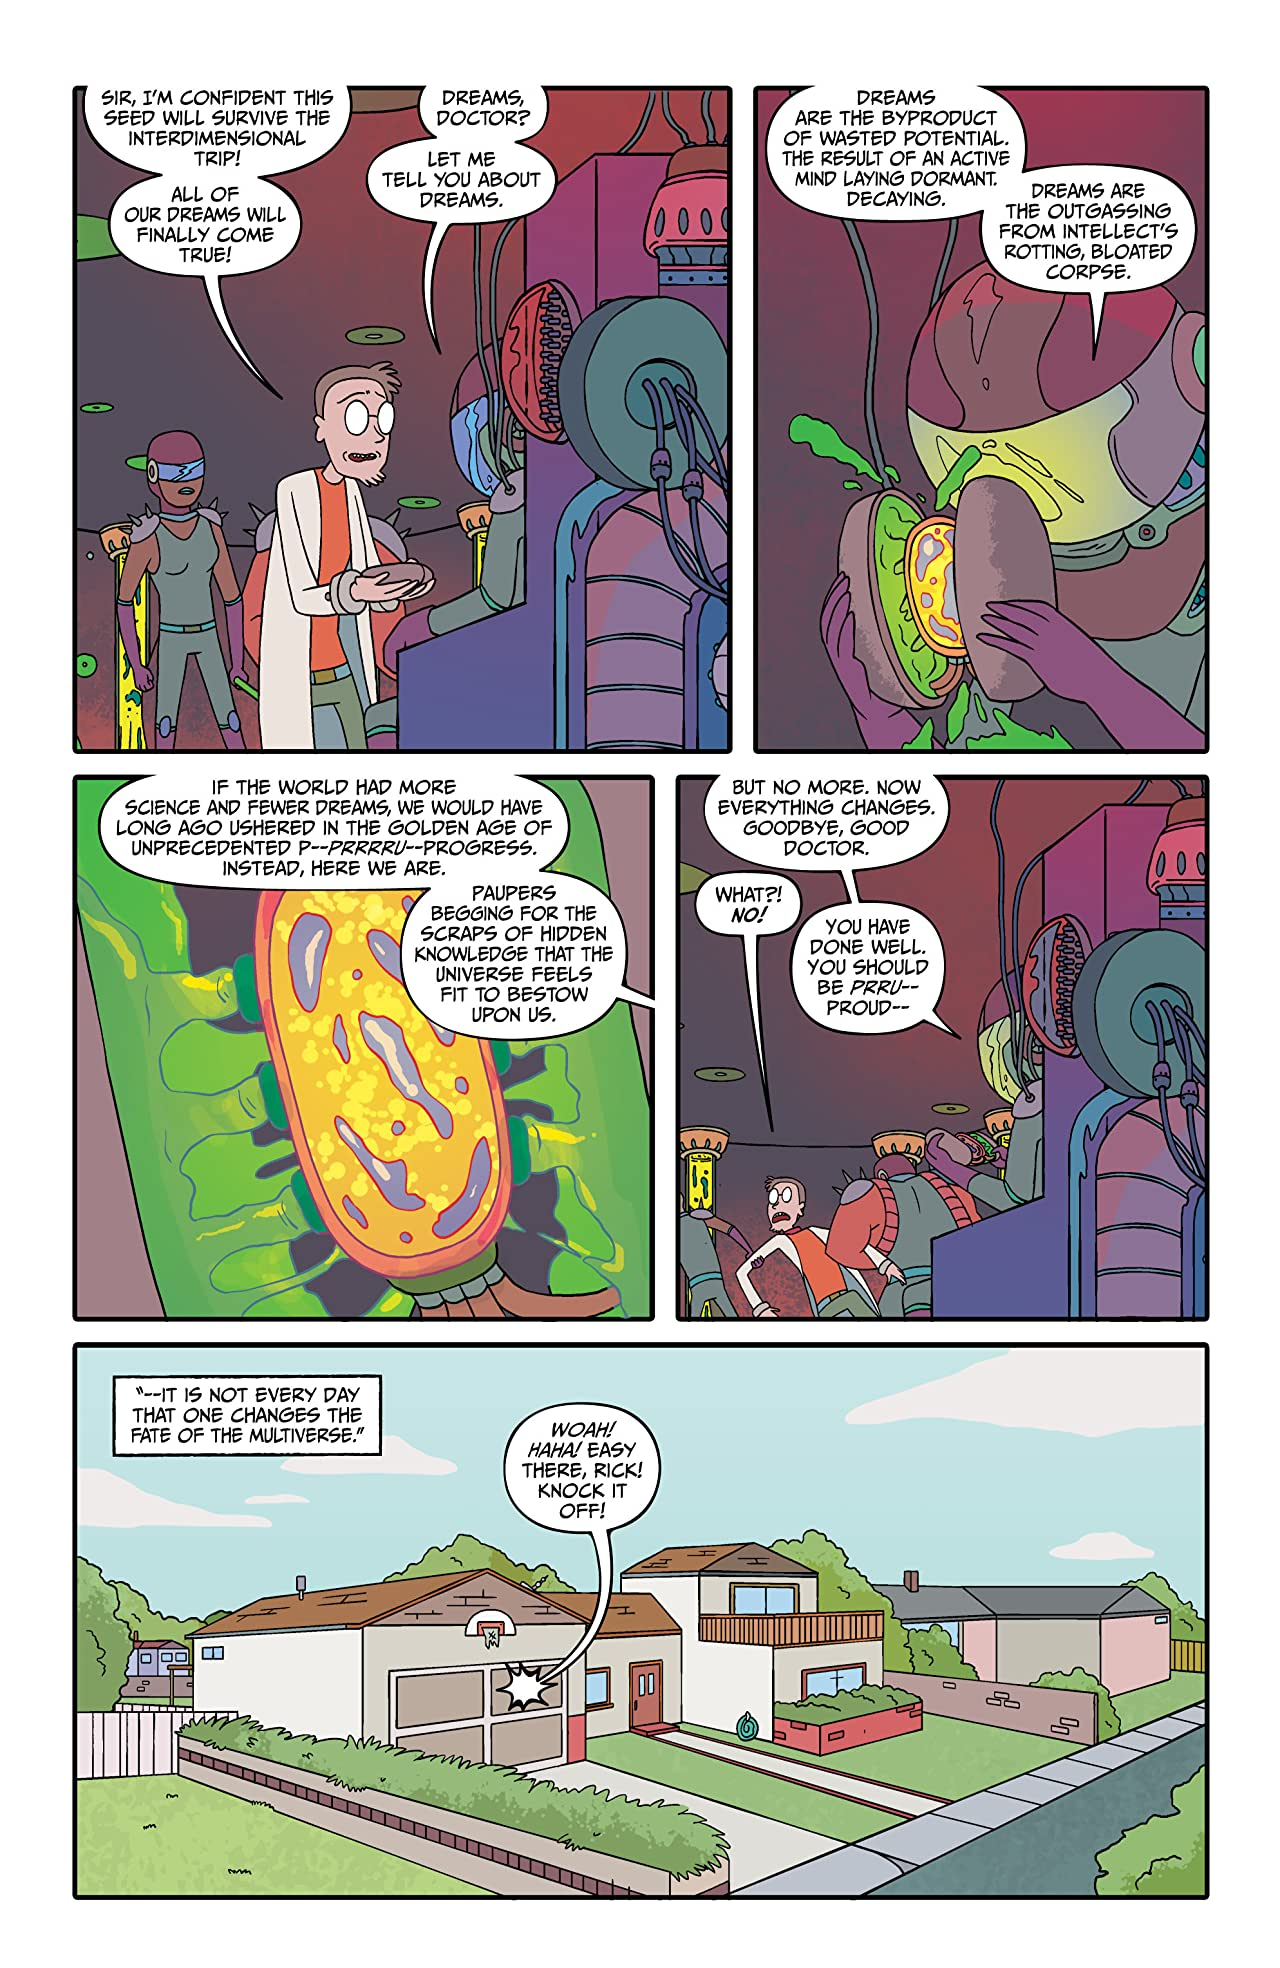 Rick and Morty #7